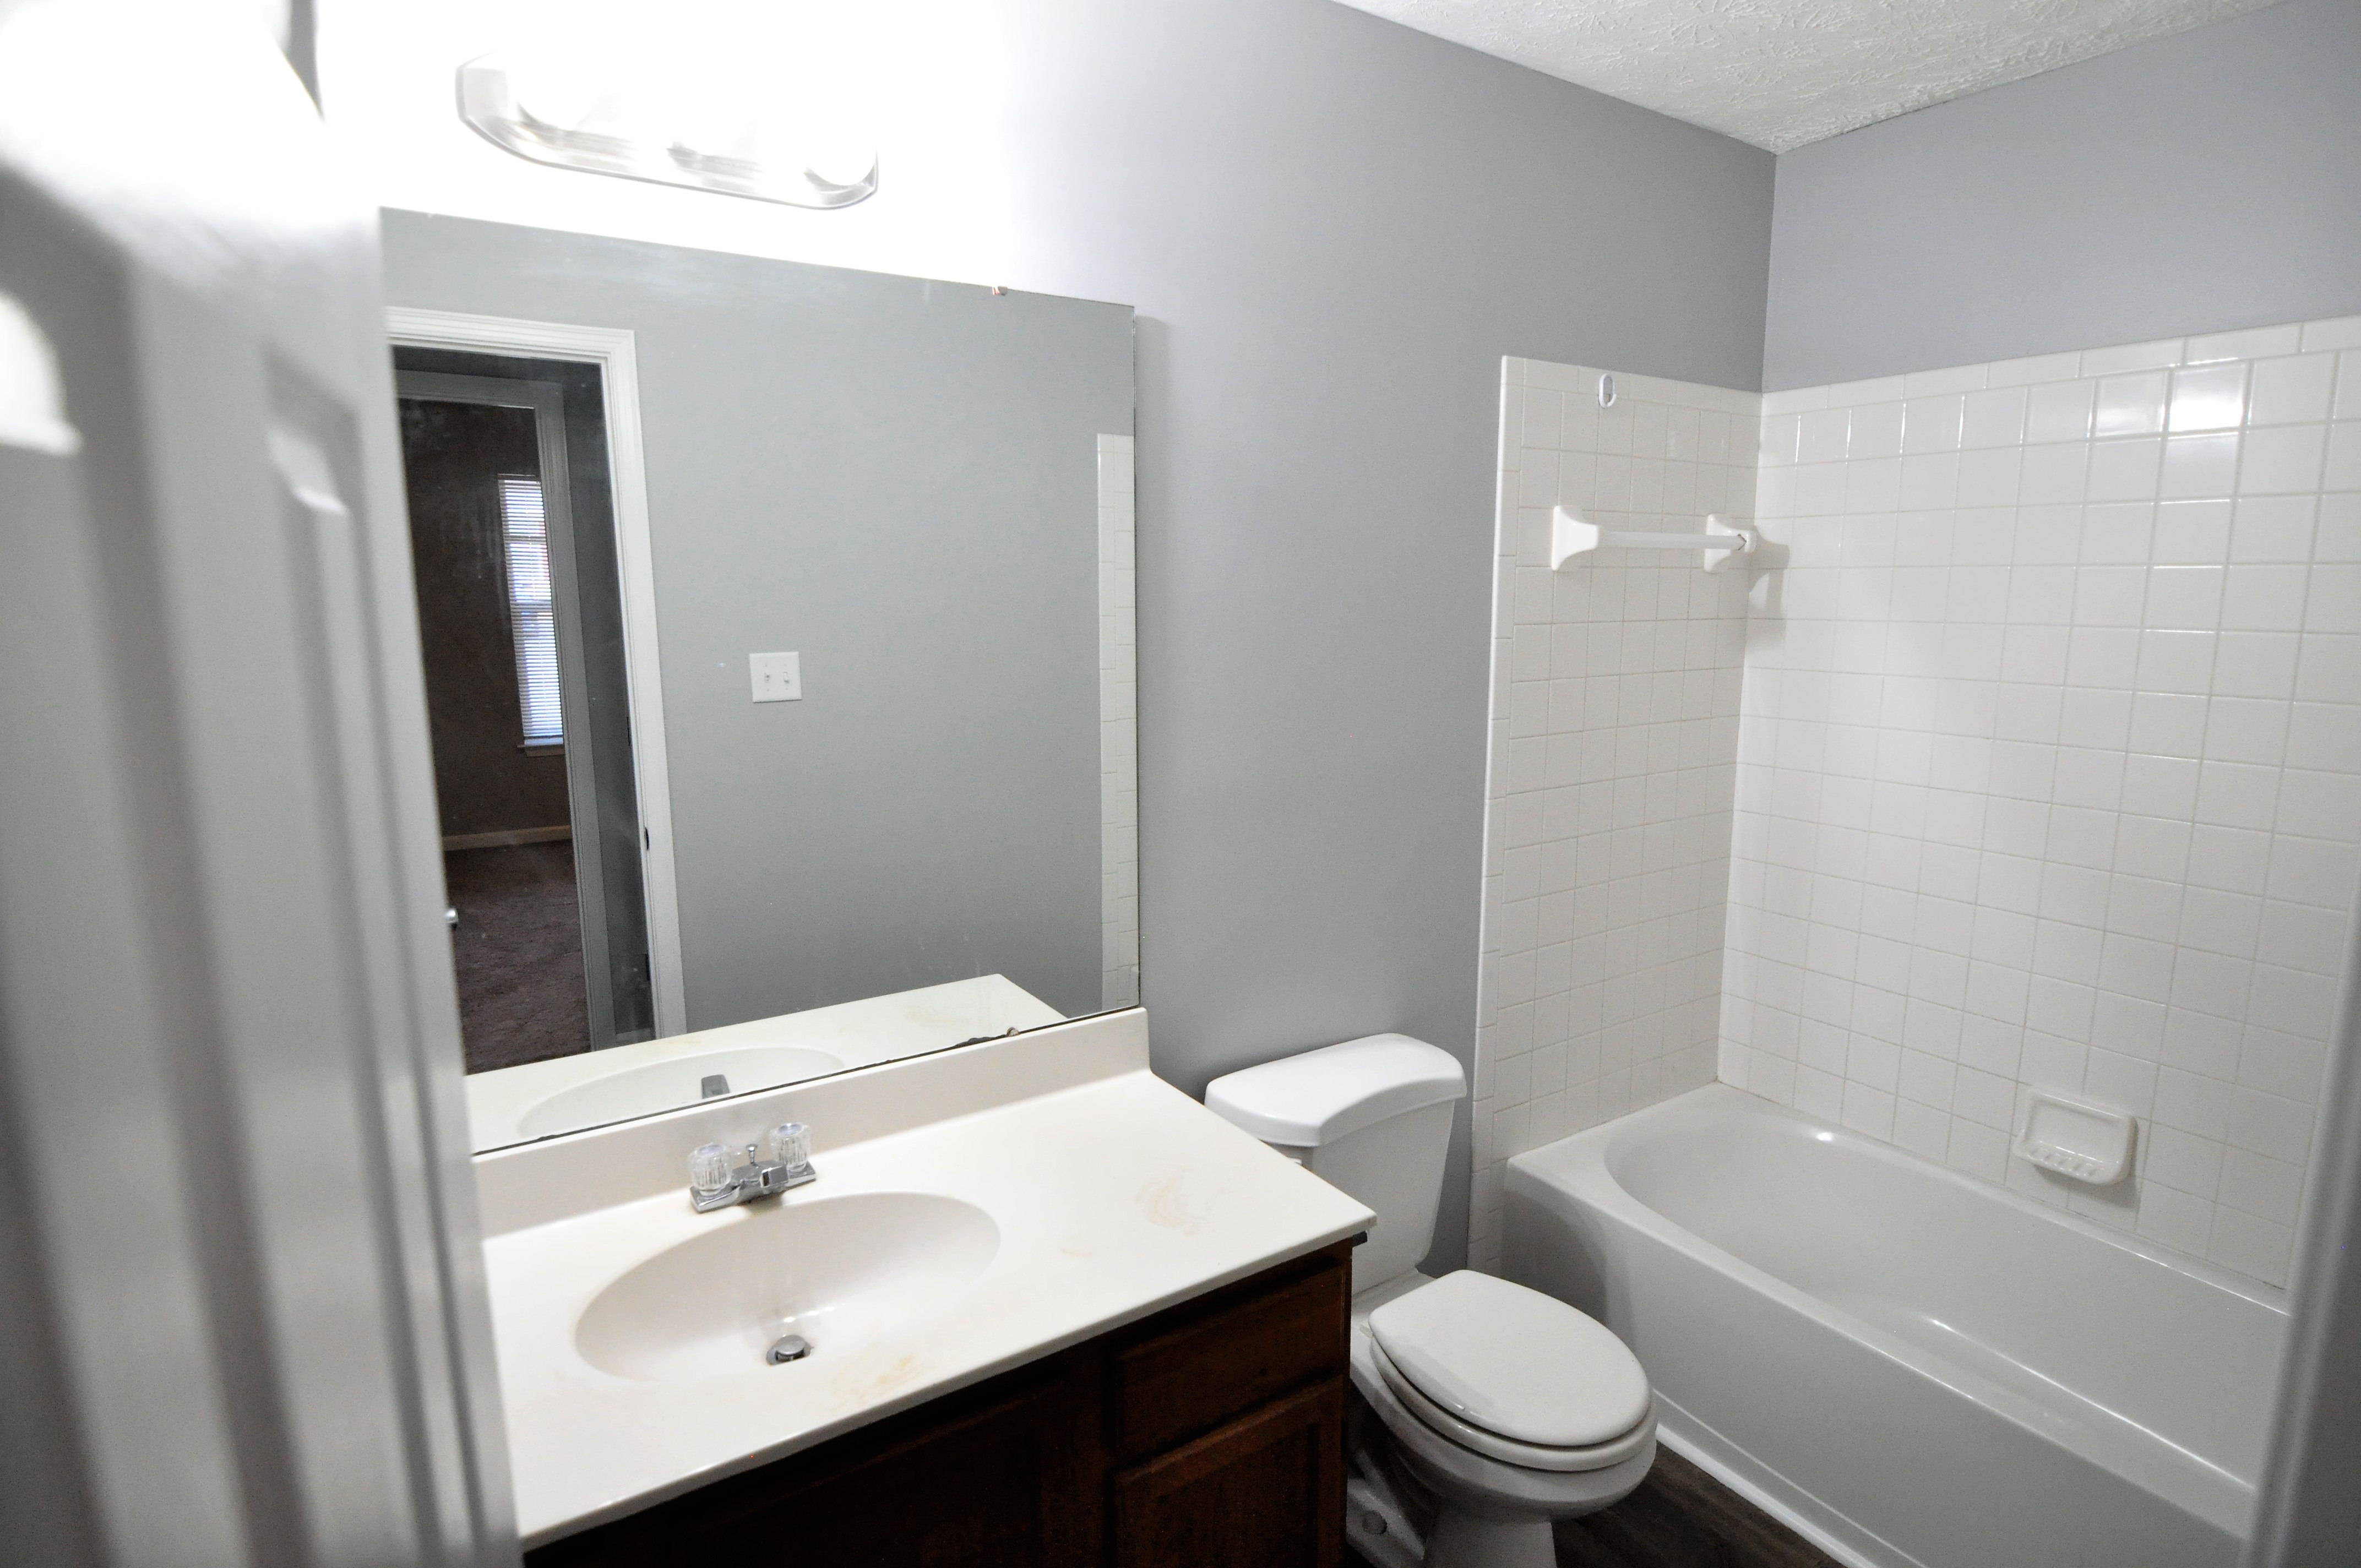 FOR RENT IN PRATTVILLE! 2 BED 2 BATH AT MULBERRY PLACE APARTMENTS